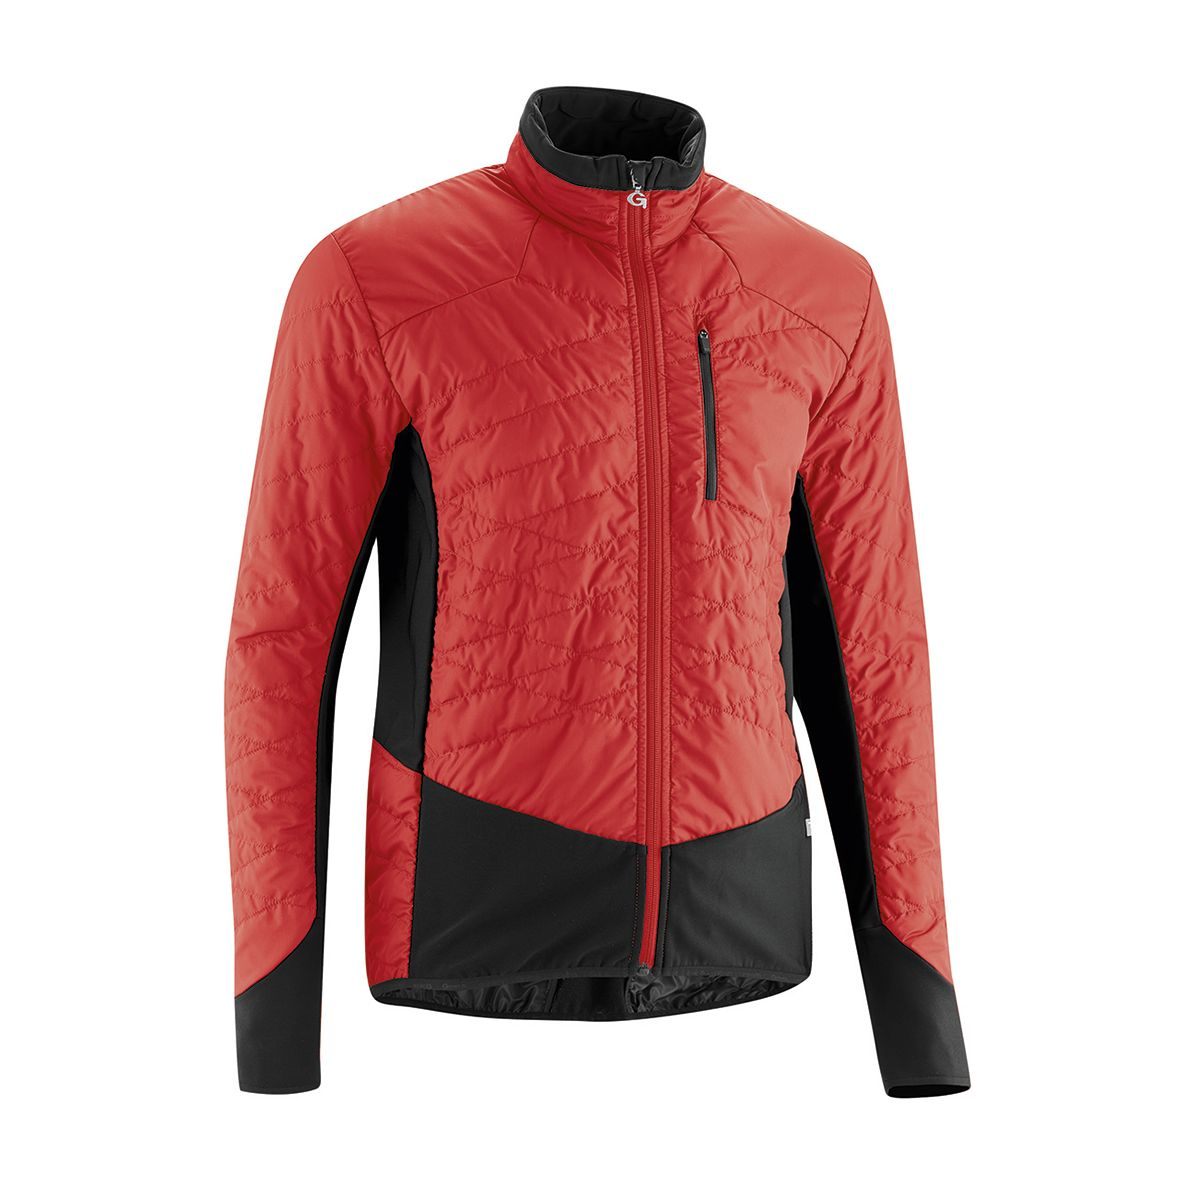 SKRAPER cycling jacket